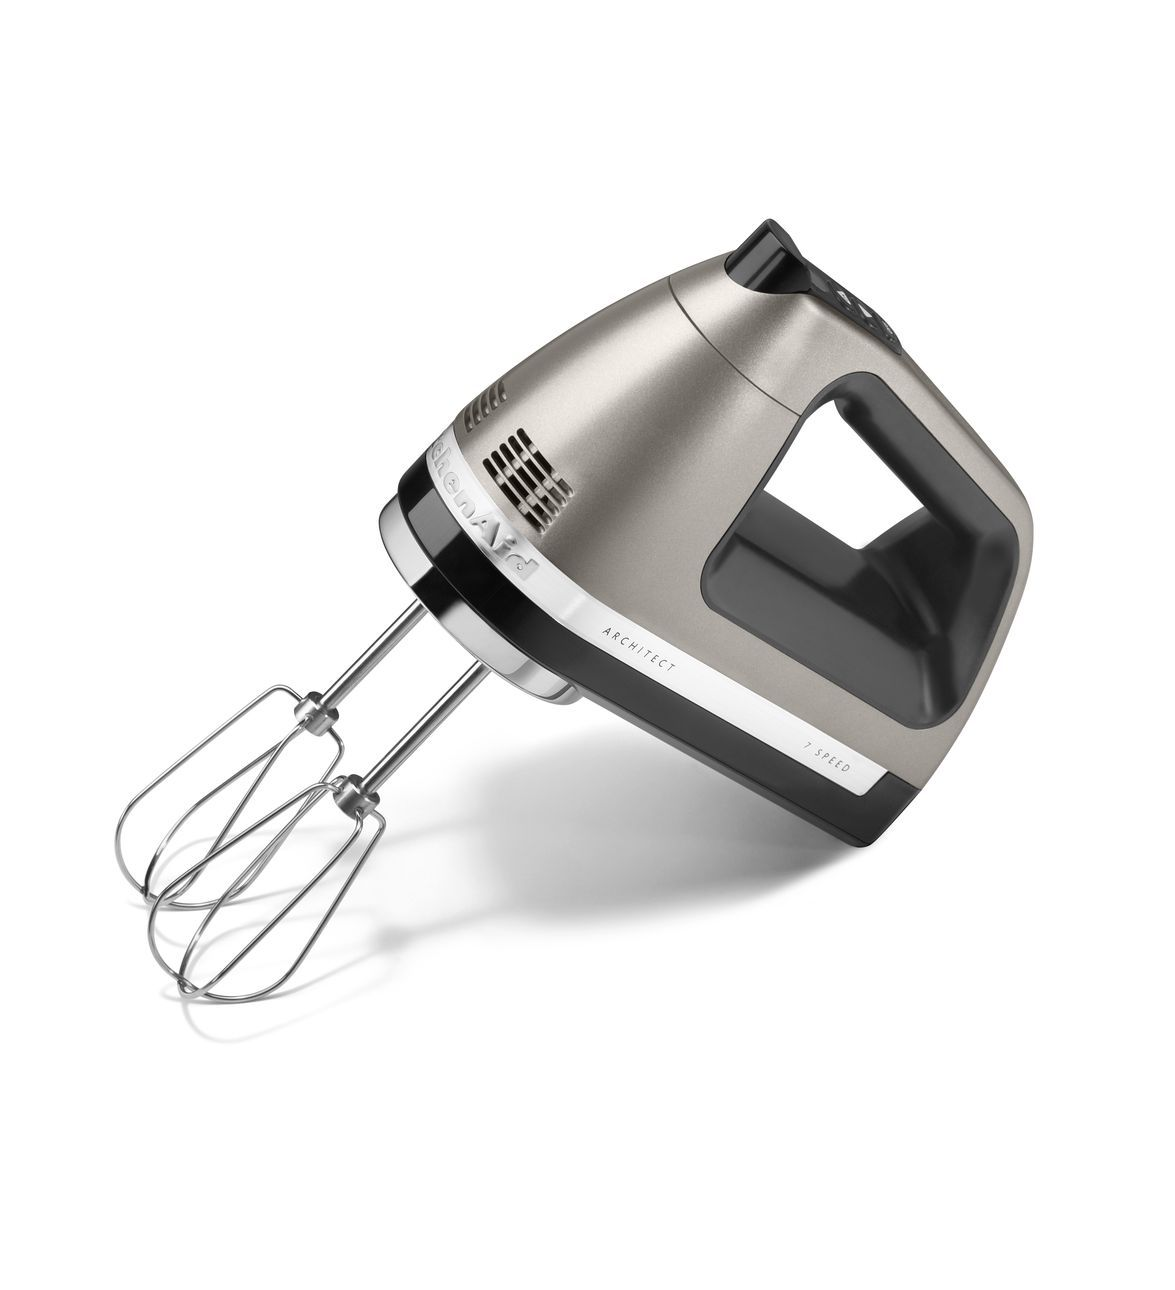 kitchenaid 7 speed digital hand mixer white rrkhm7 - Kitchen Aid Hand Mixer